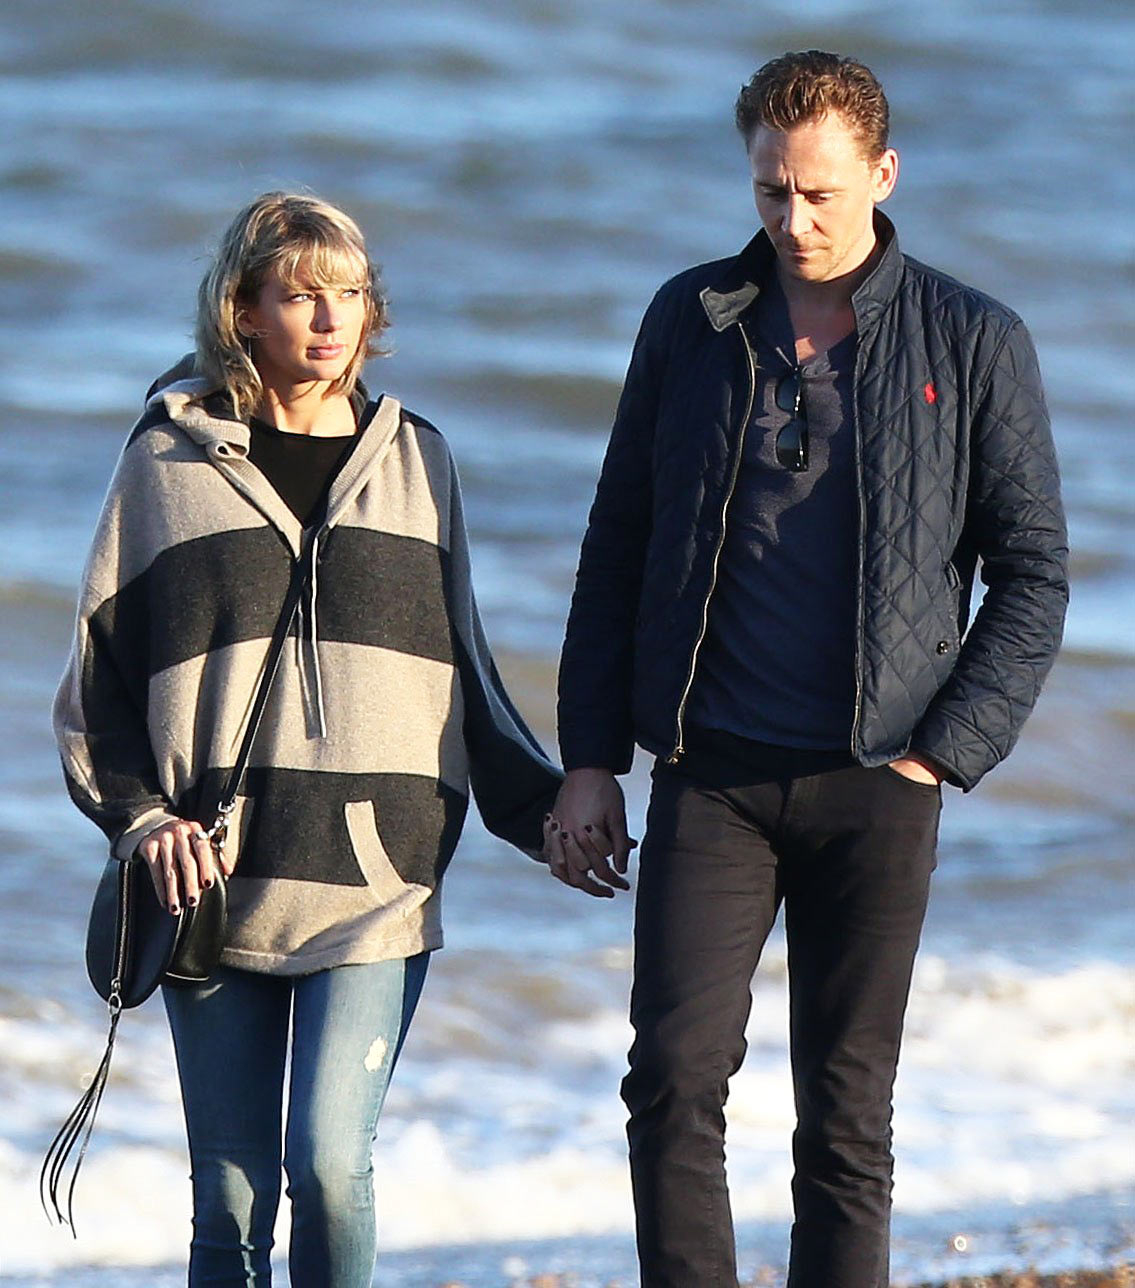 Taylor Swift Tom Hiddleston Hold Hands On Beach In England